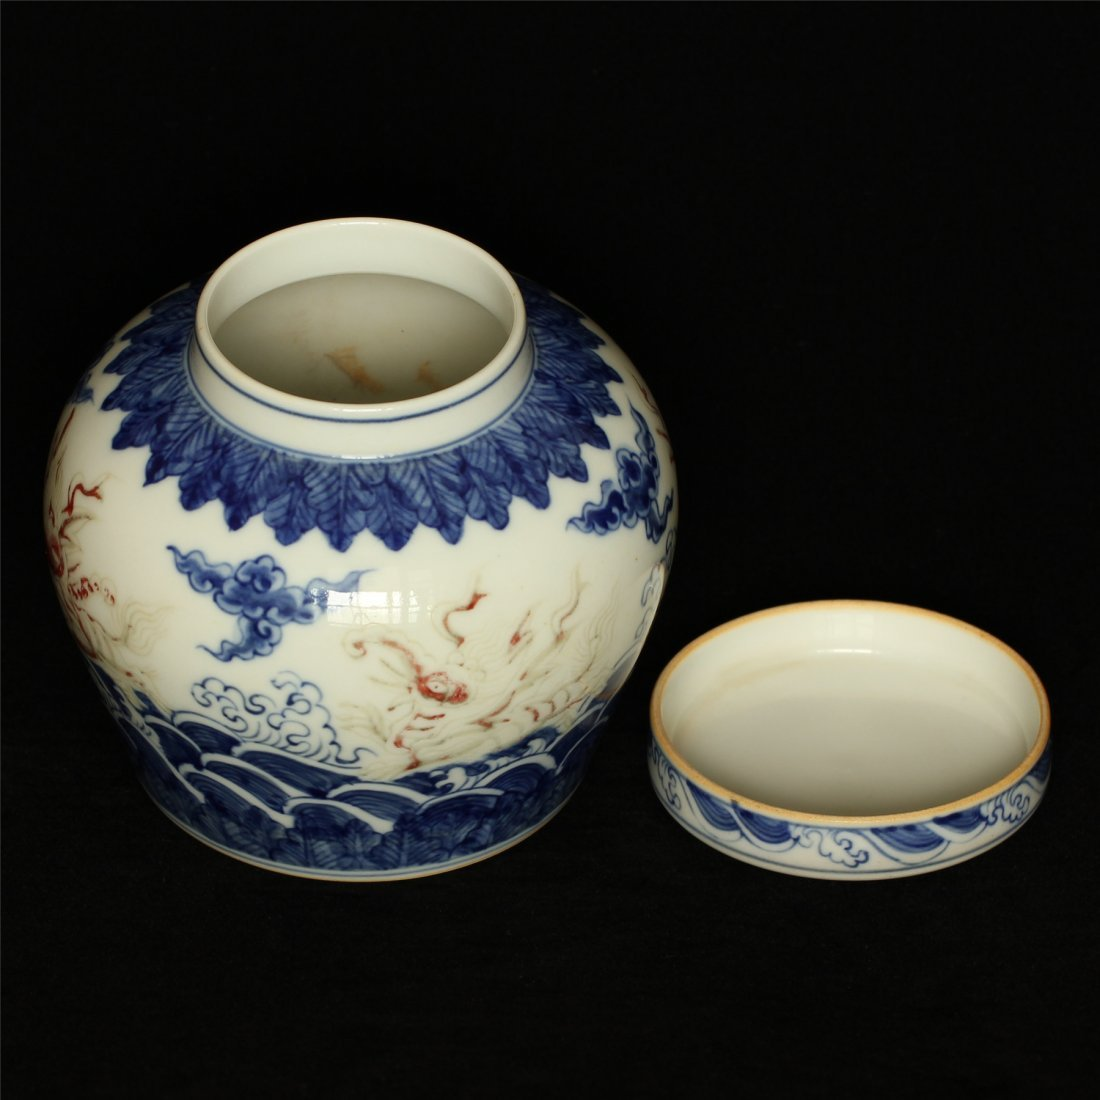 Blue and white & underglaze red porcelain jar of Tian - 3